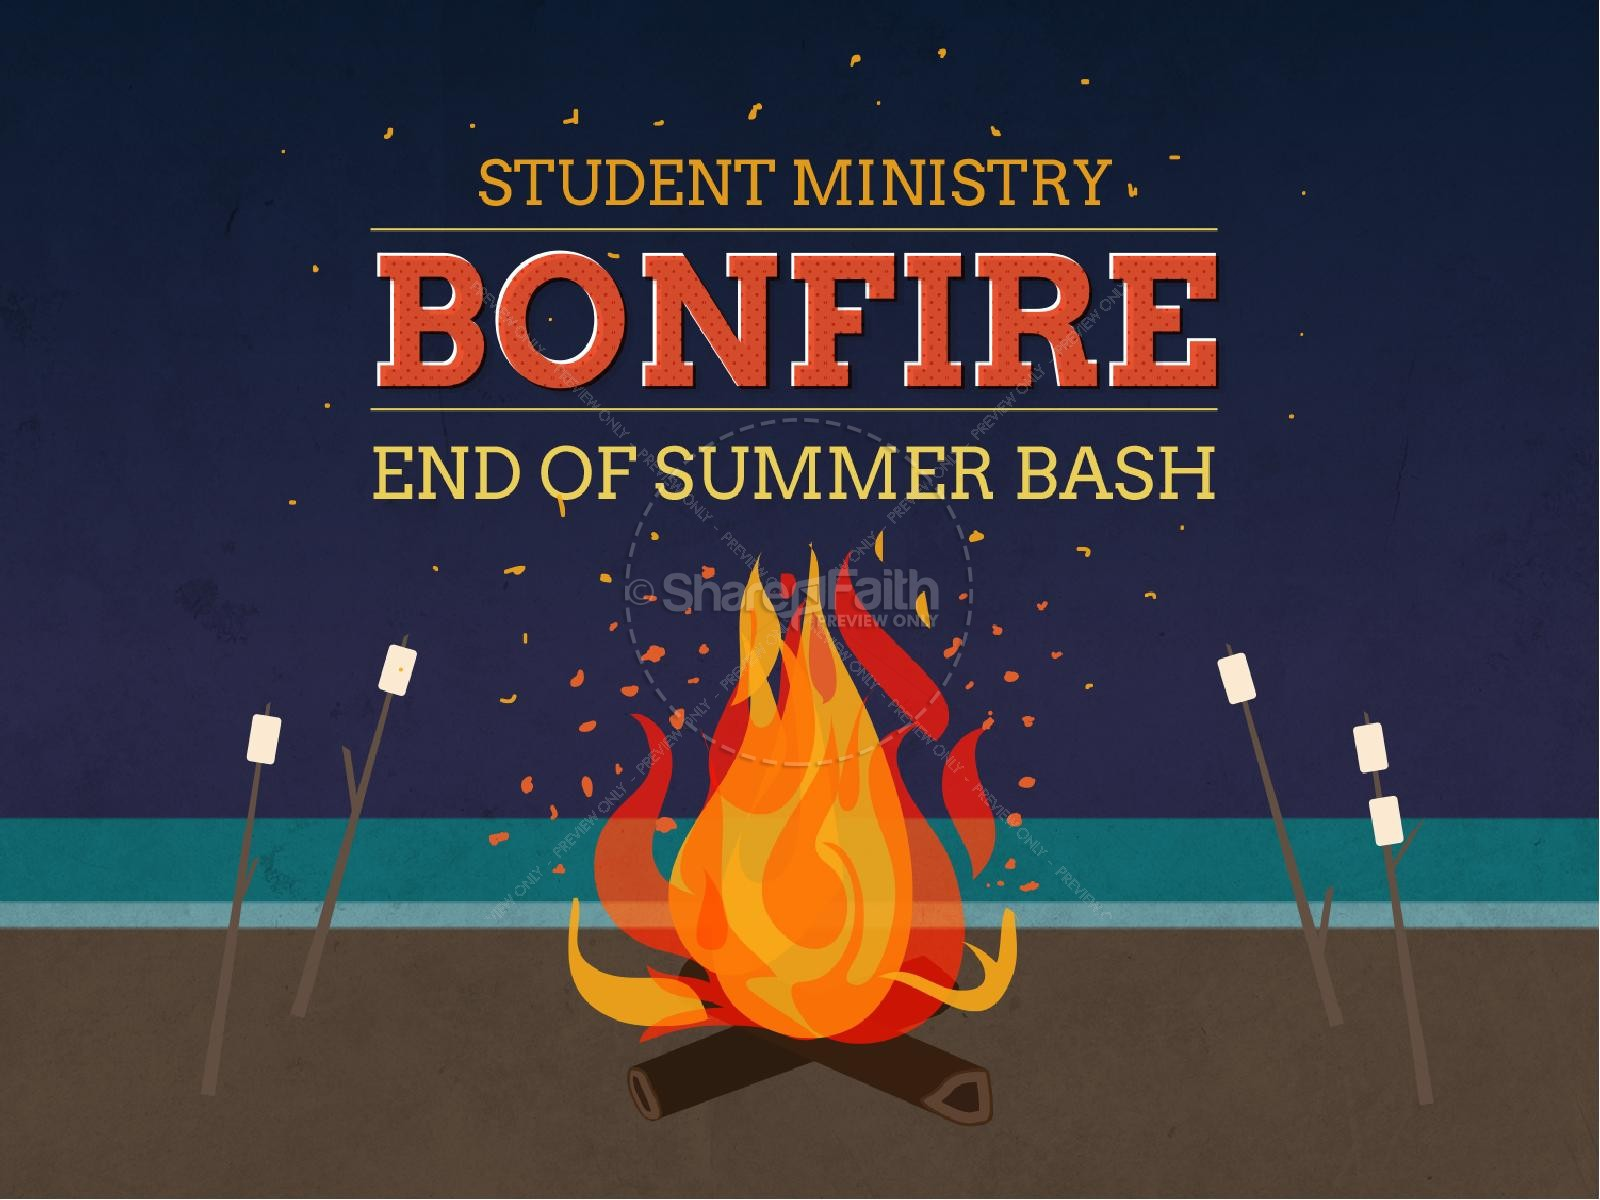 Bonfire Summer Bash Christian PowerPoint